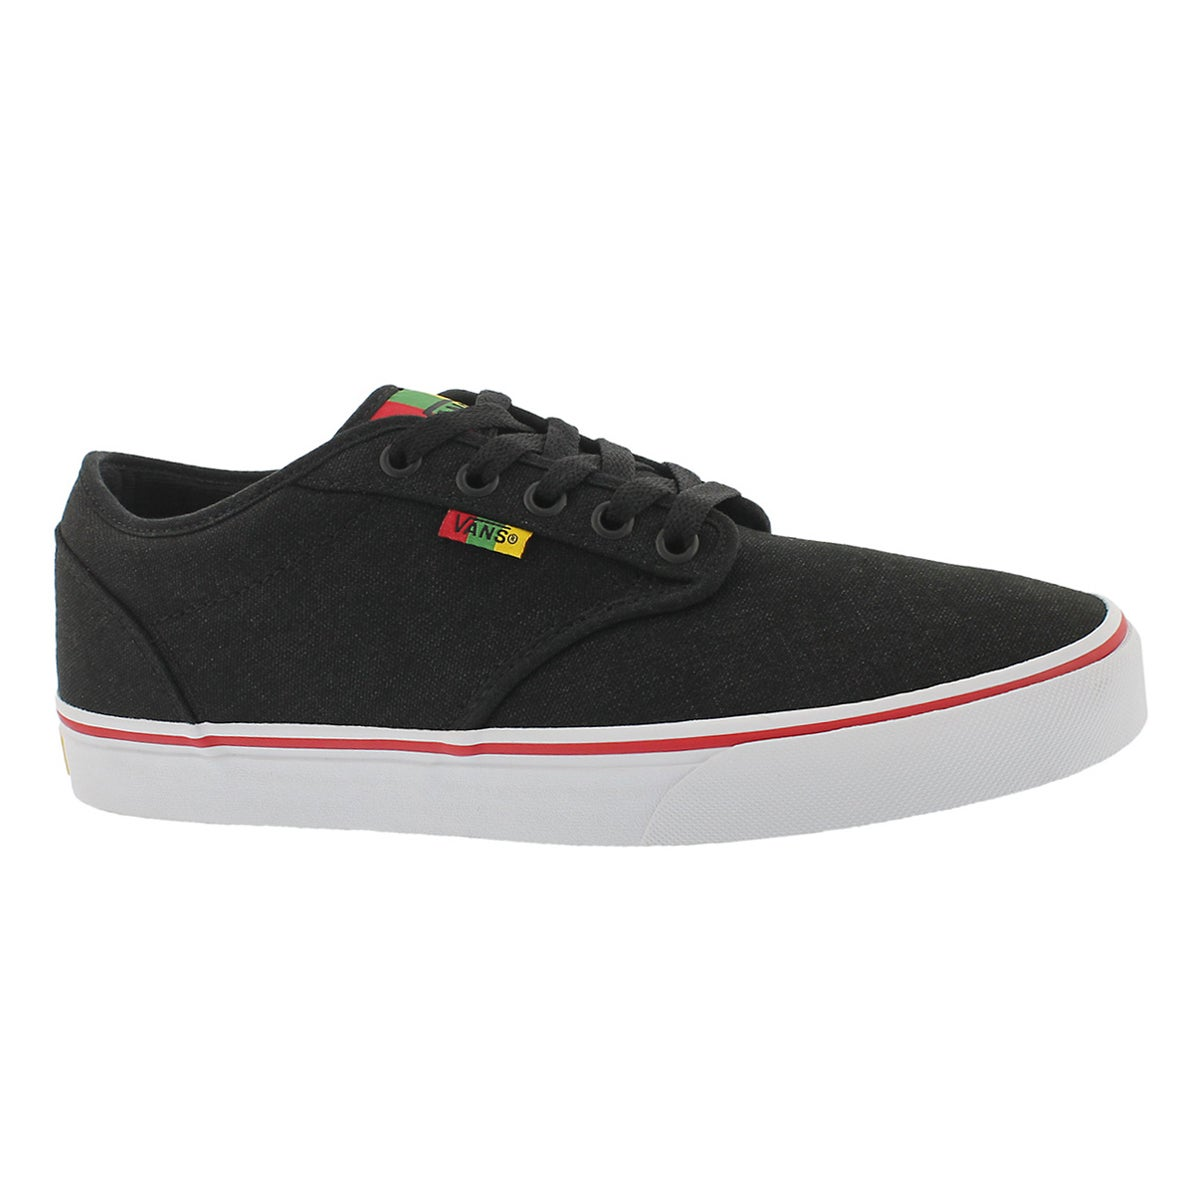 Men's ATWOOD rasta canvas laceup sneakers